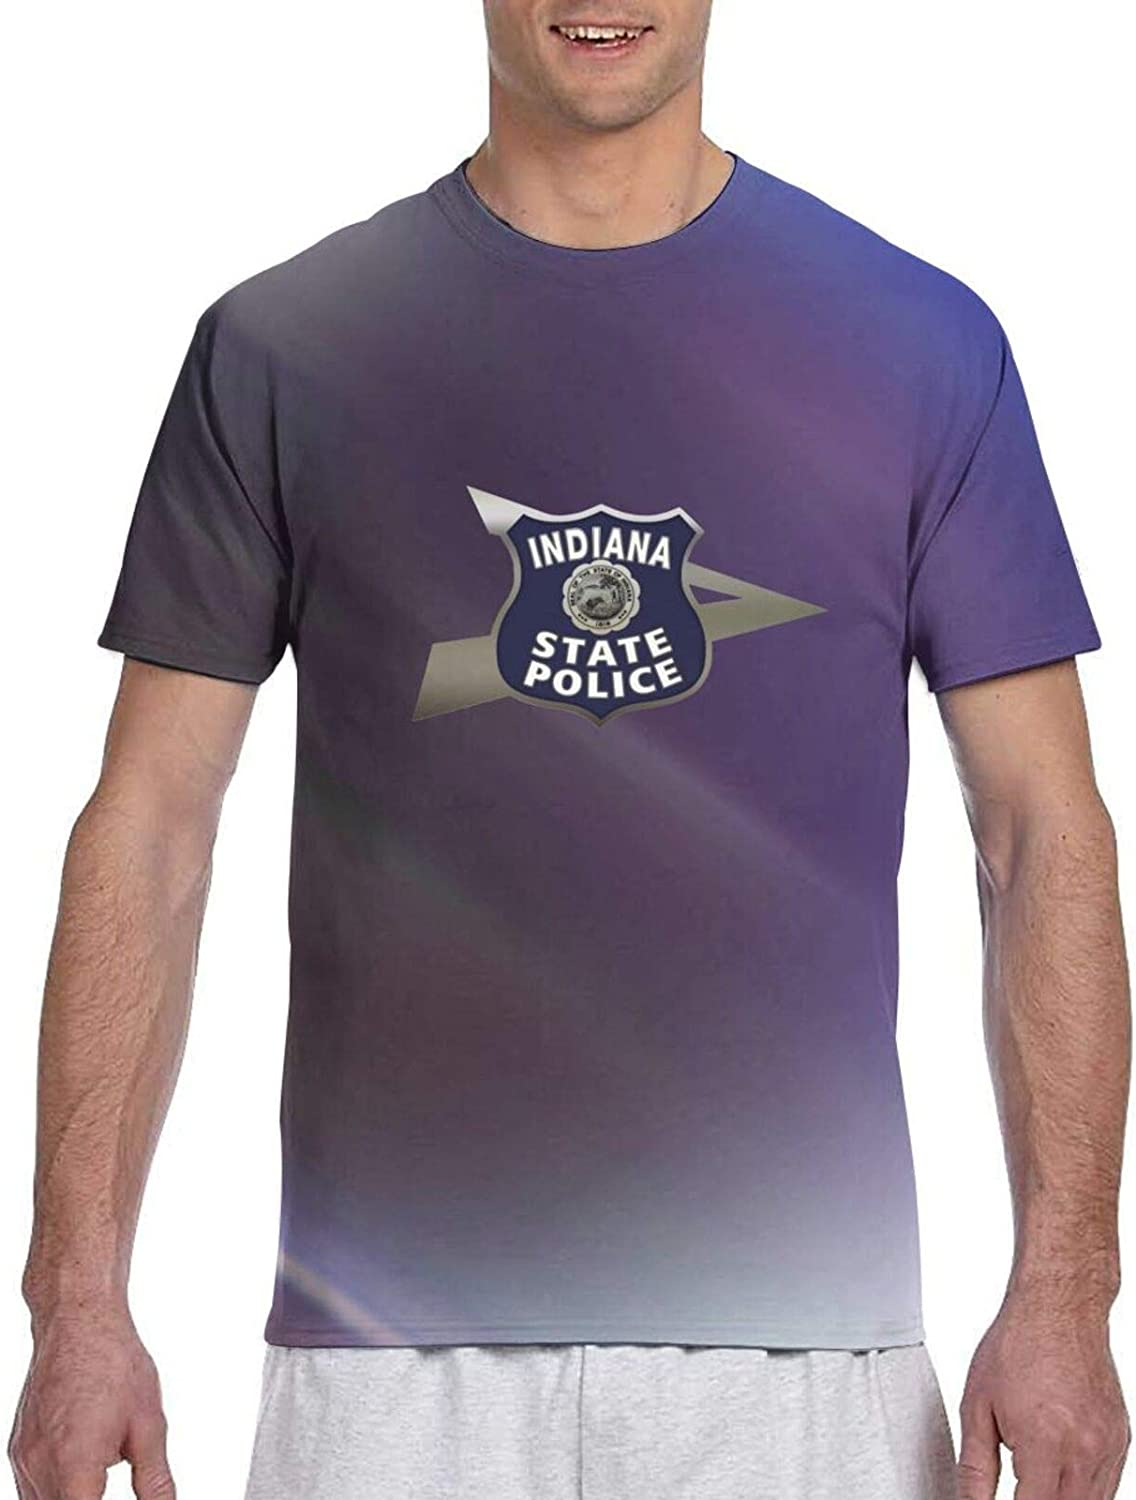 Eaggetabletold Peru Indiana State Police Travel Men's 3D Versatile T-Shirt Quick Drying Clothes